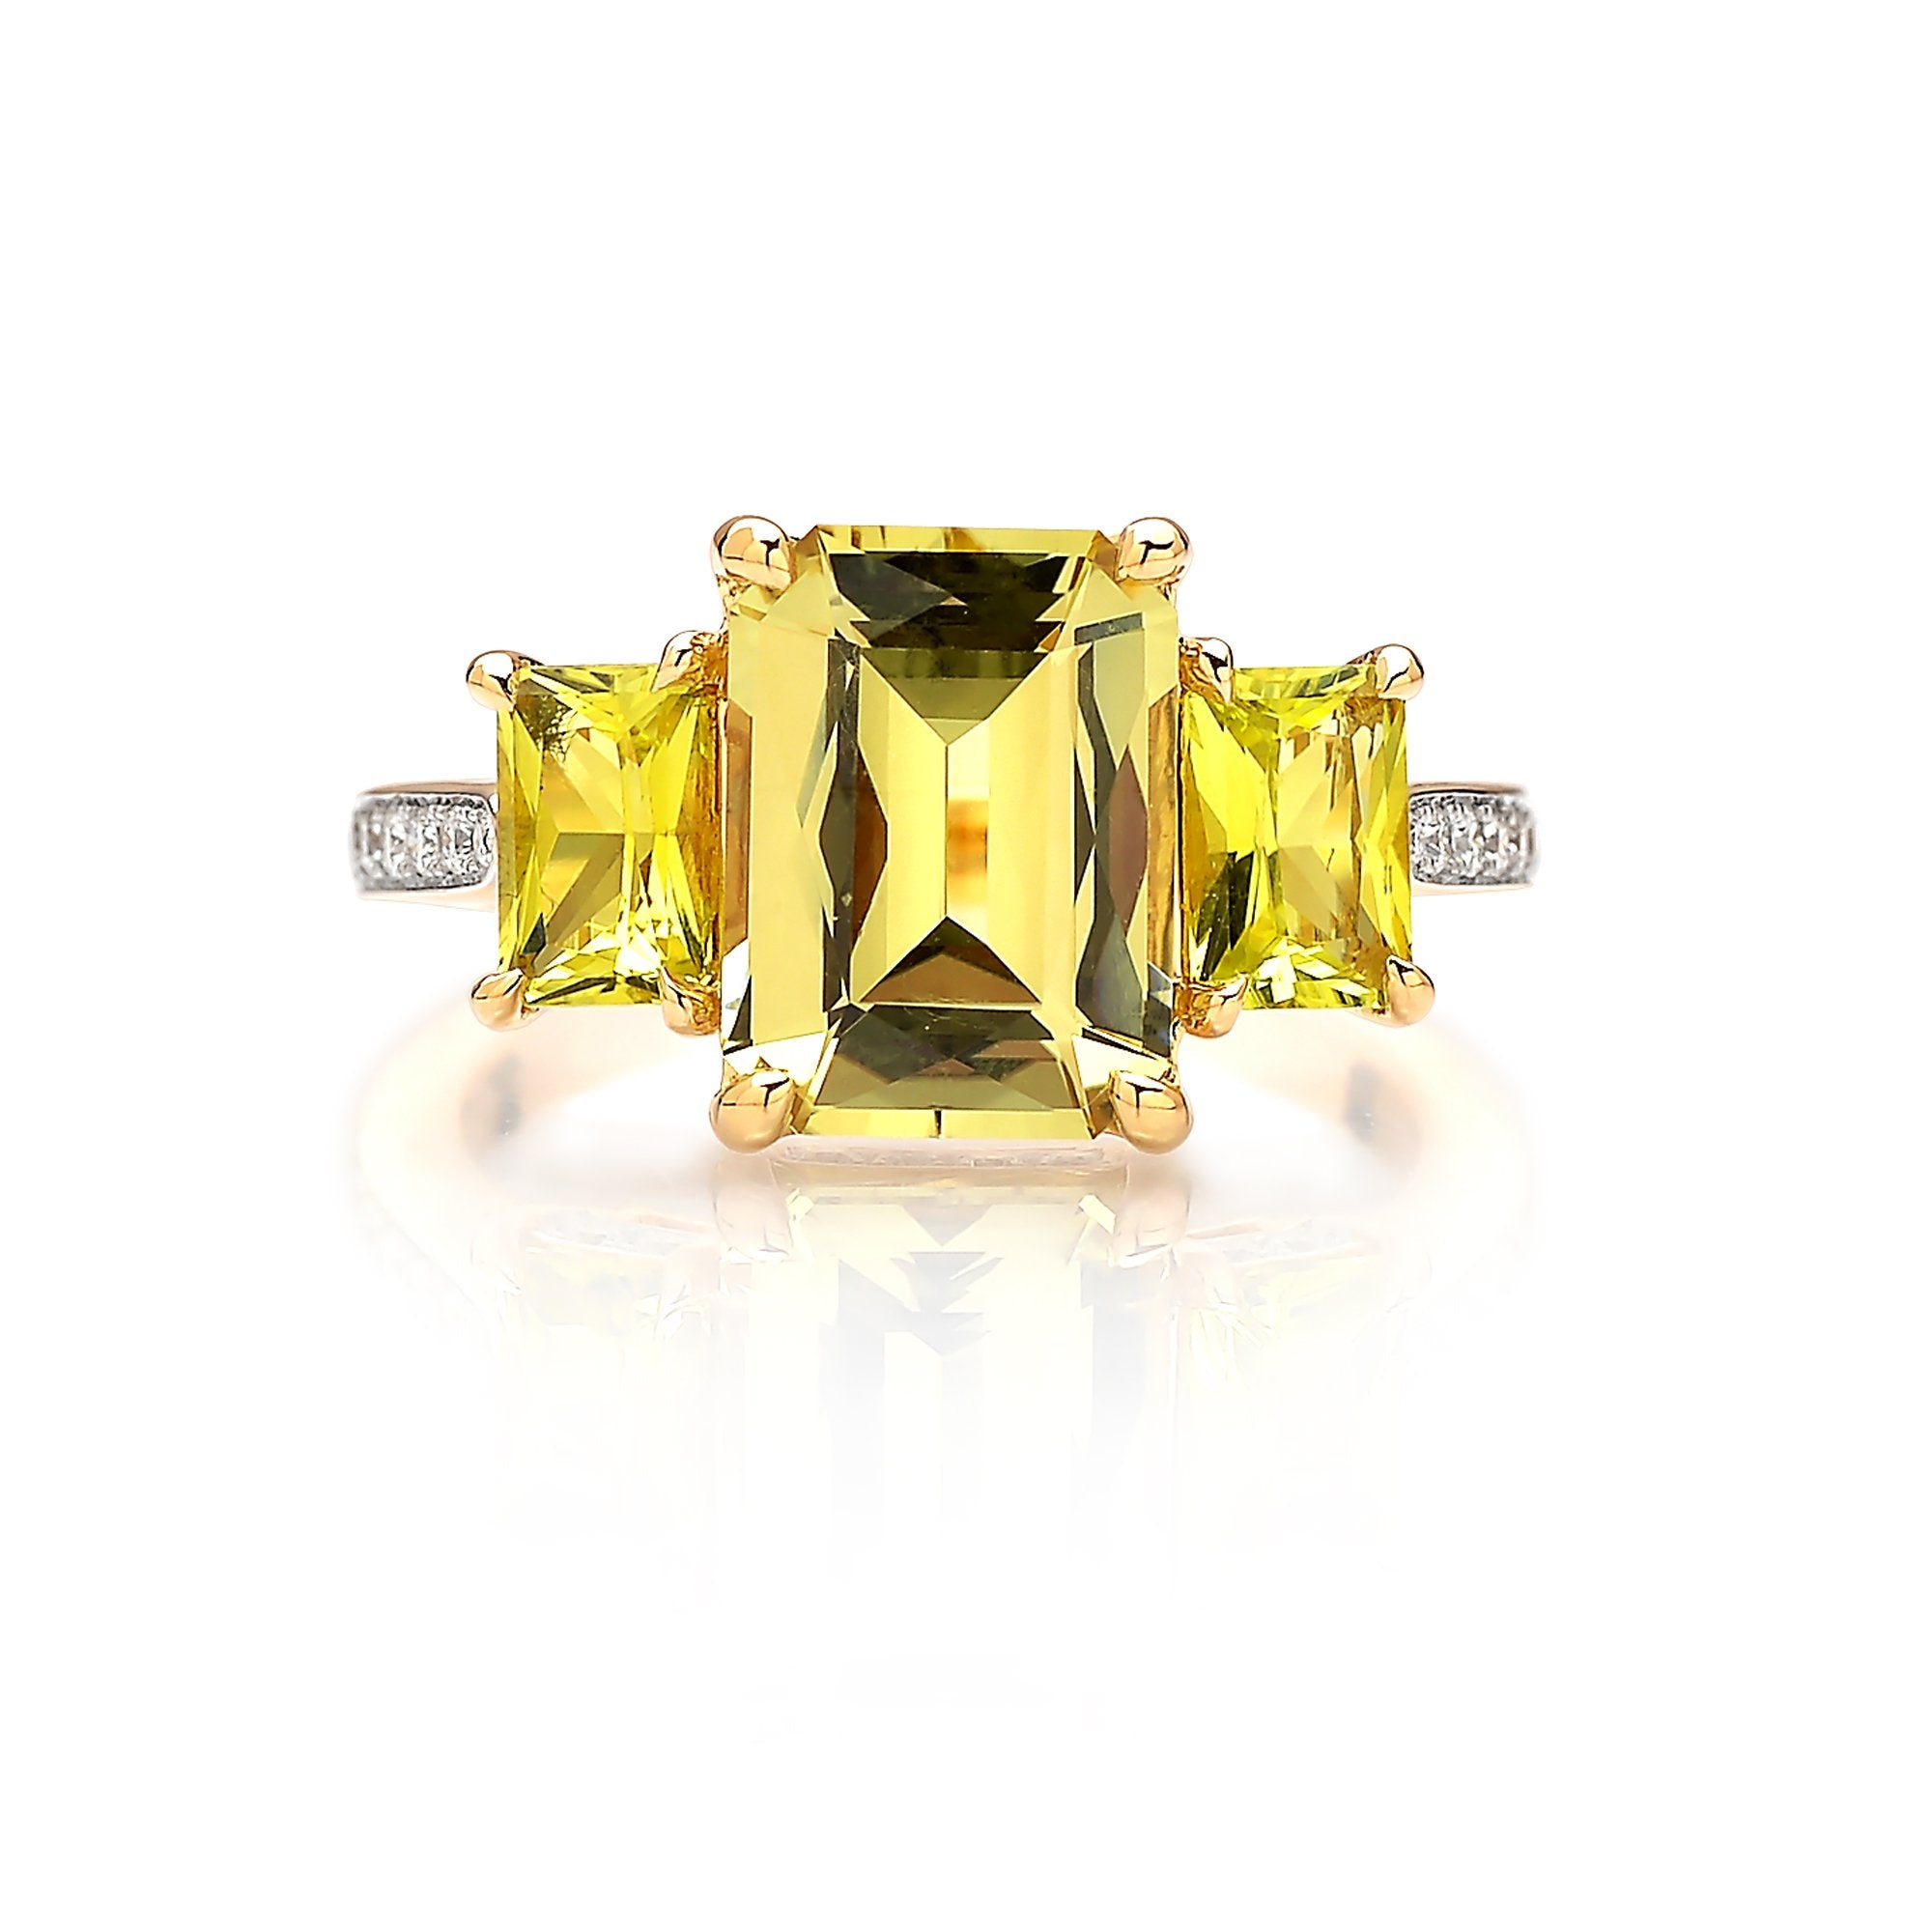 18kt Gold Chrysoberyl, Tourmaline and Diamond Ring - Paolo Costagli